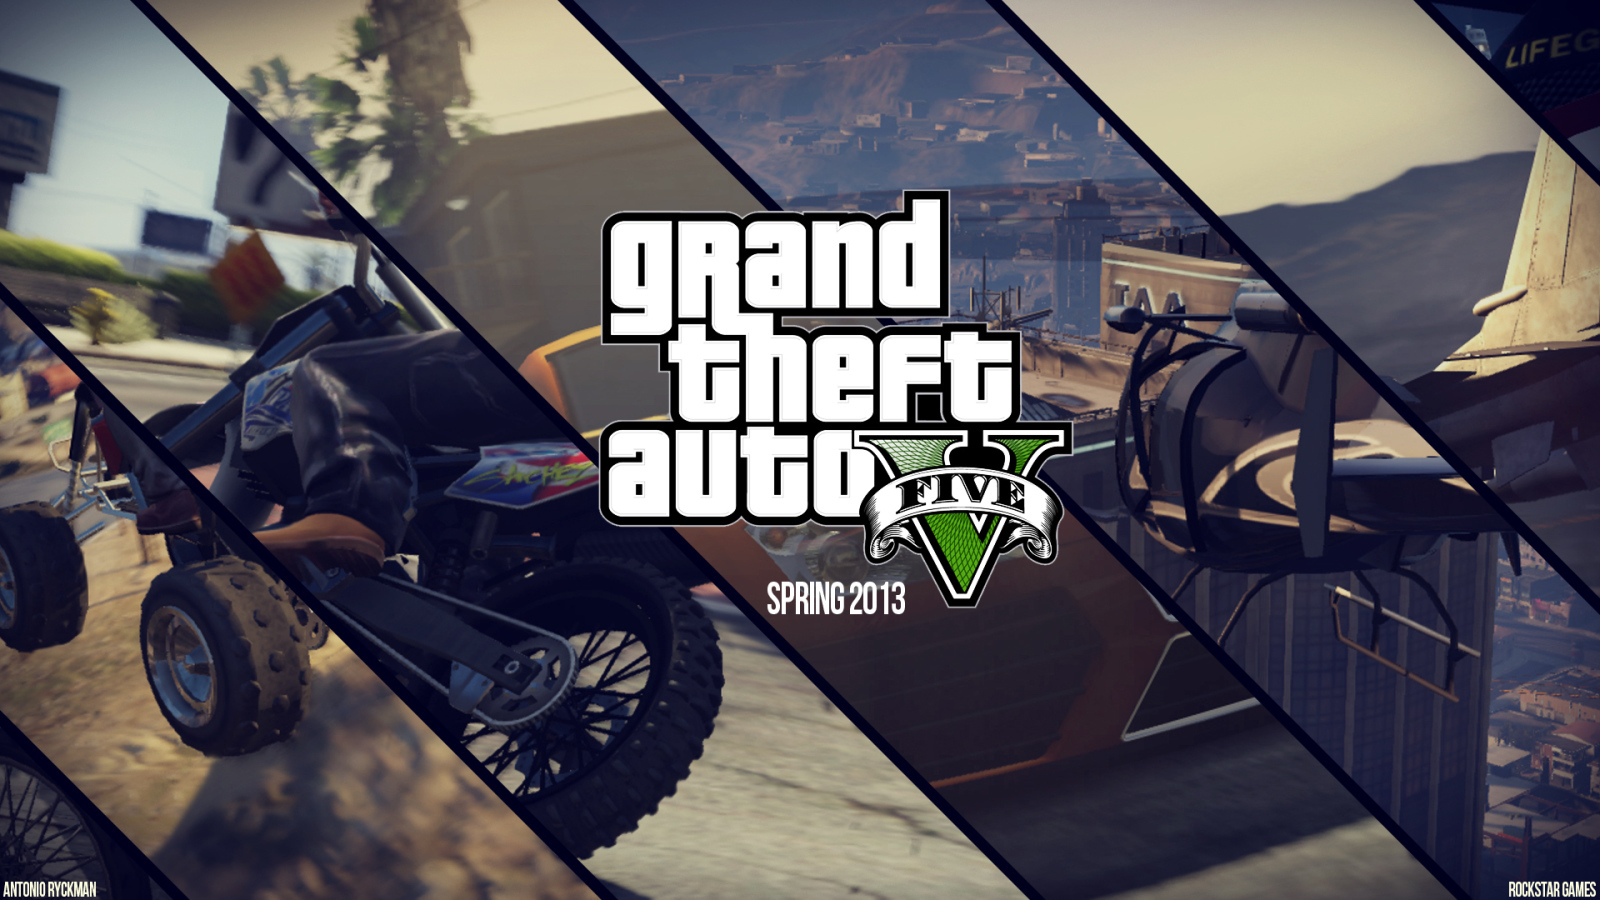 Grand theft auto v wallpaper and background 1600x900 for Gta v bedroom wallpaper